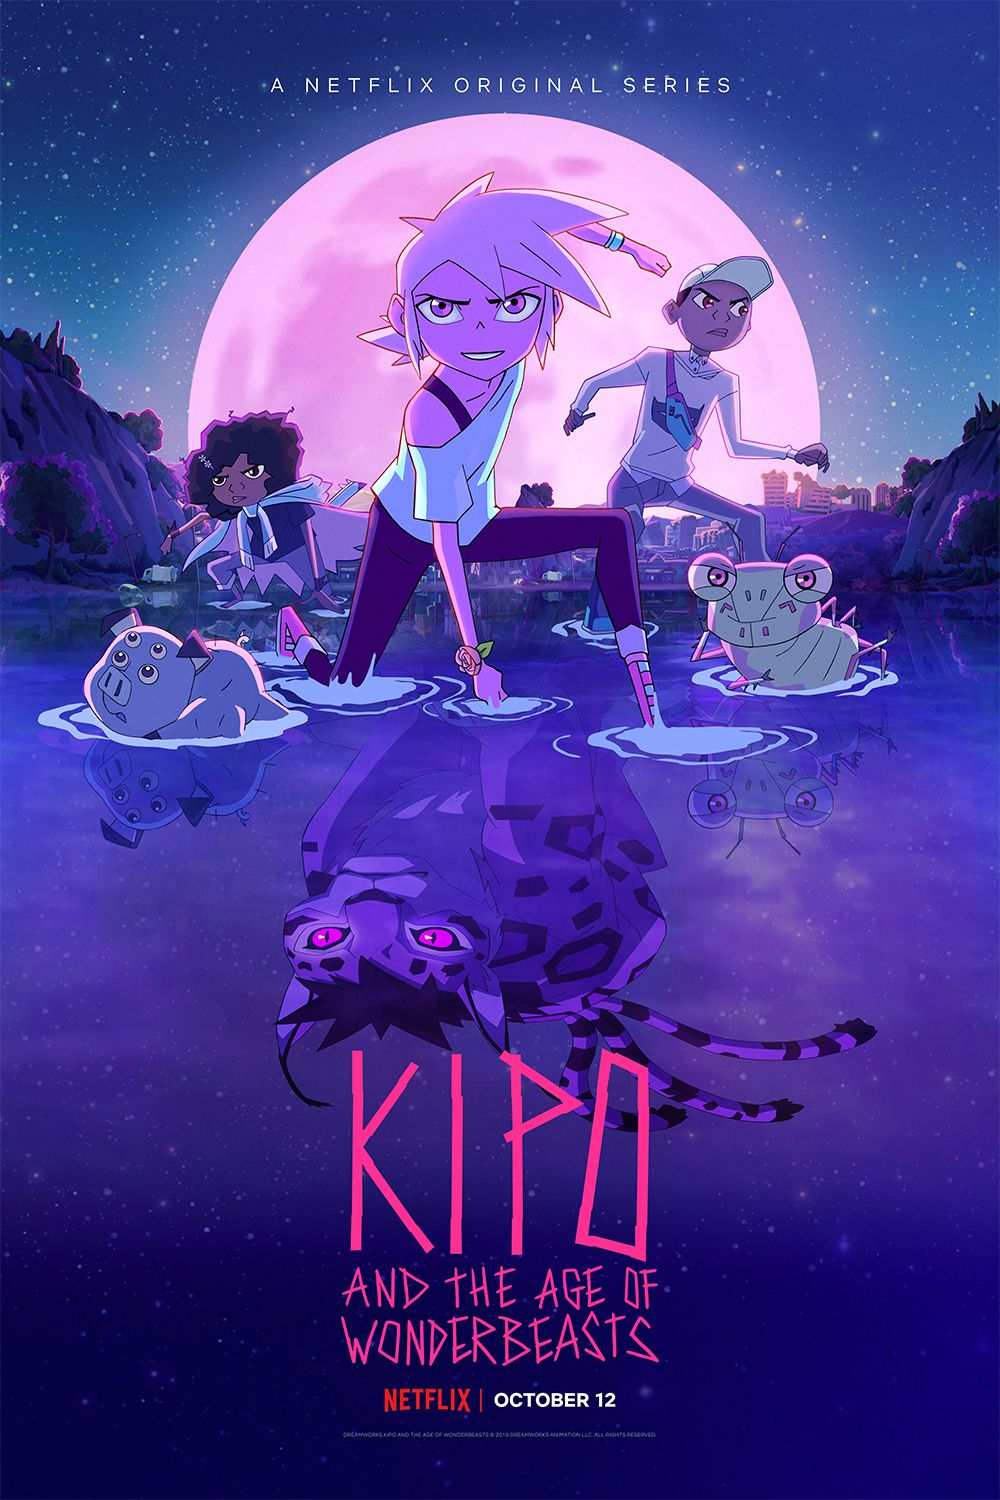 season 3 poster of kipo and the age of wonderbeasts, featuring kipo front and center, a jaguar reflection in the water